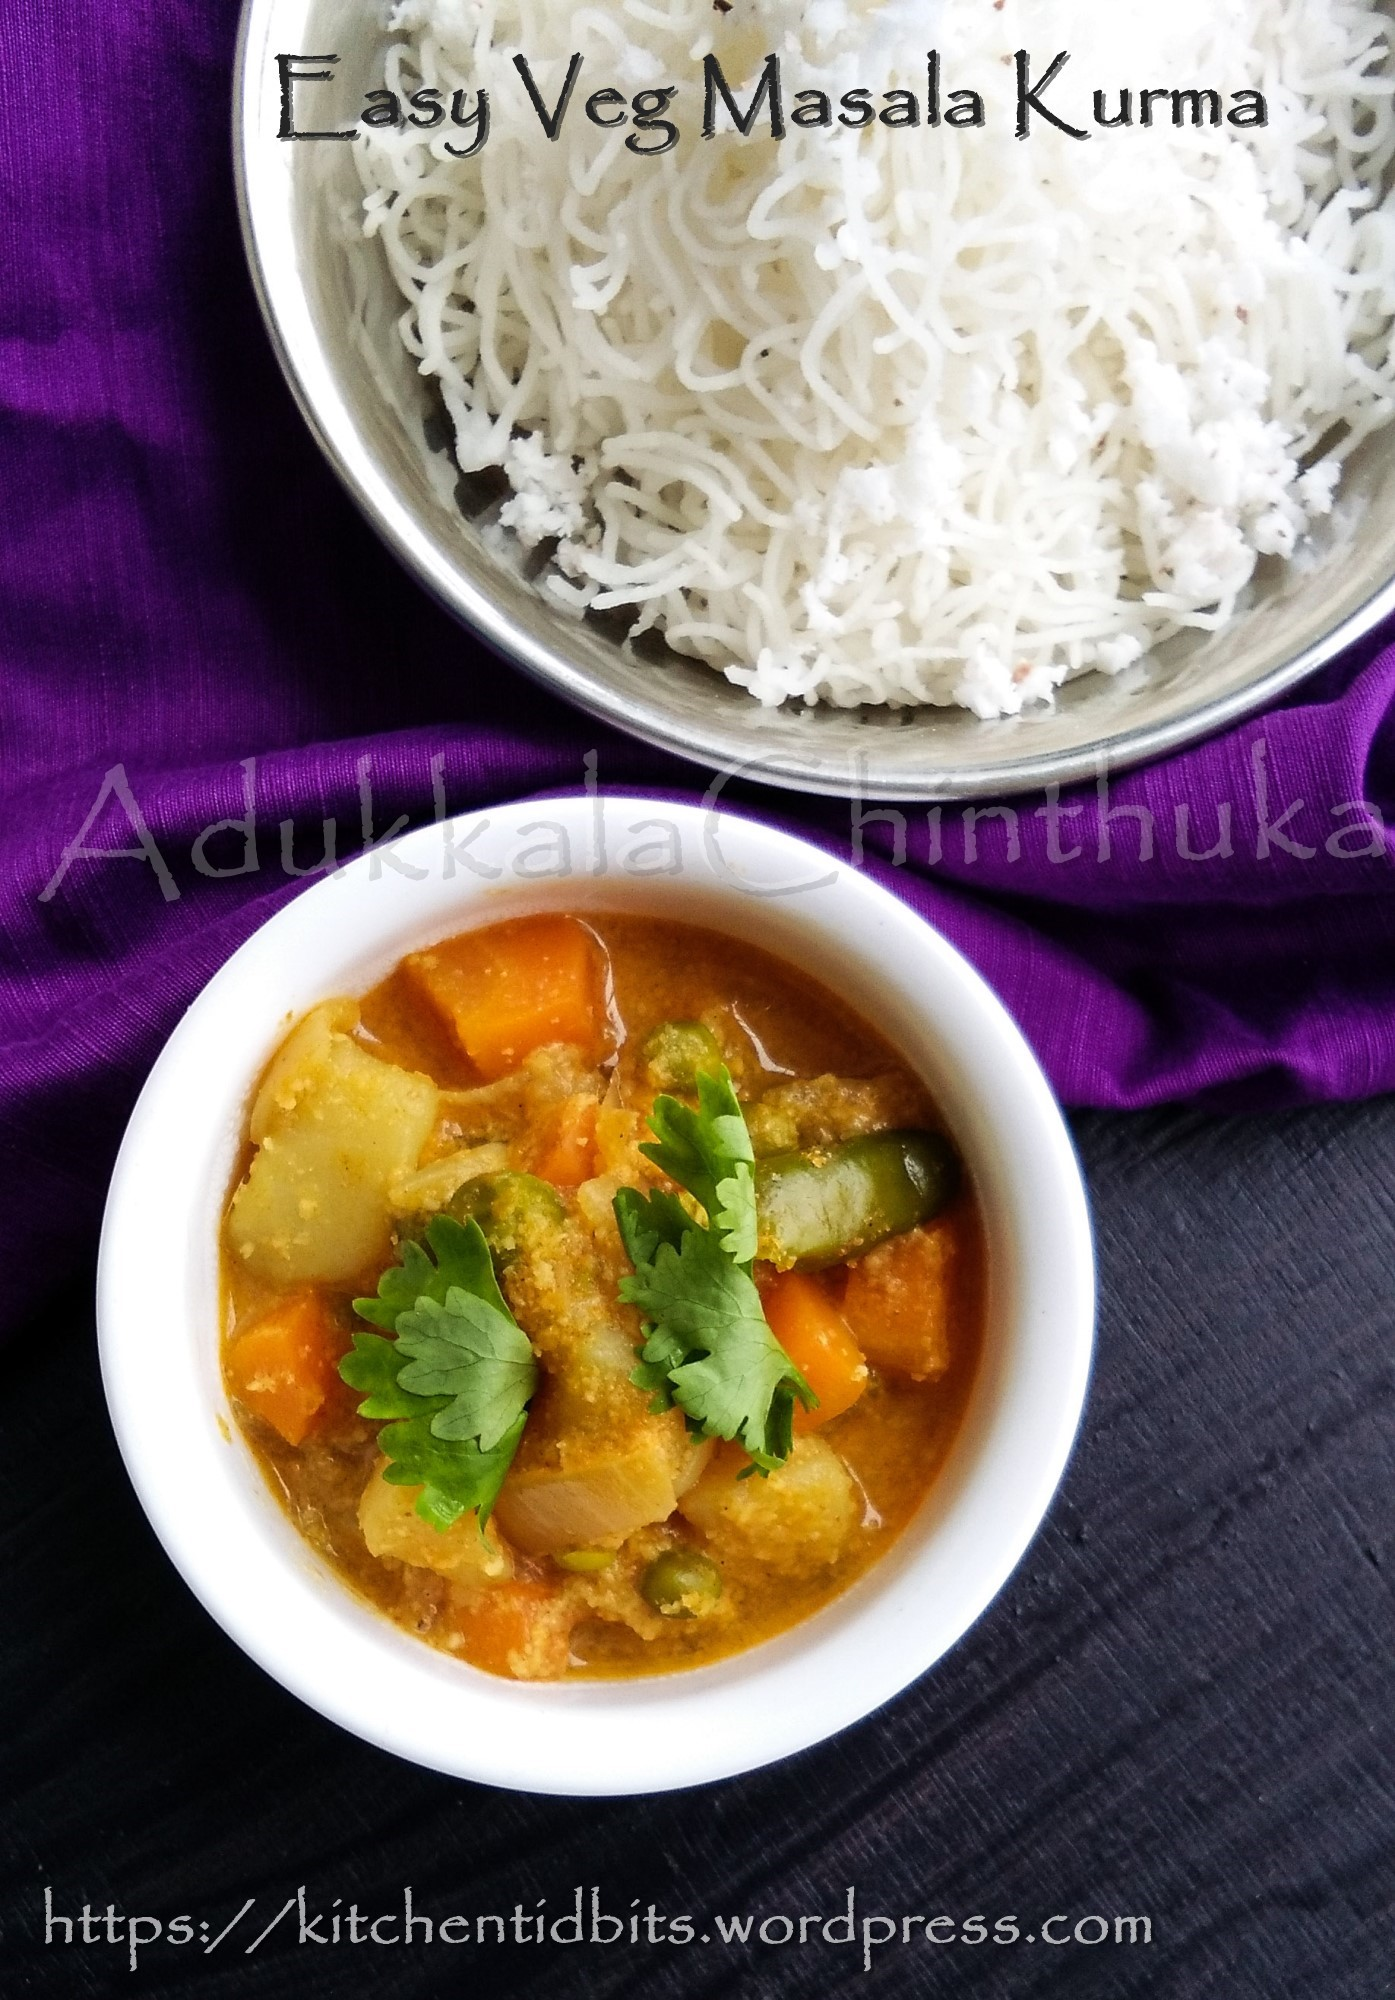 Easy Vegetable Masala Kurma